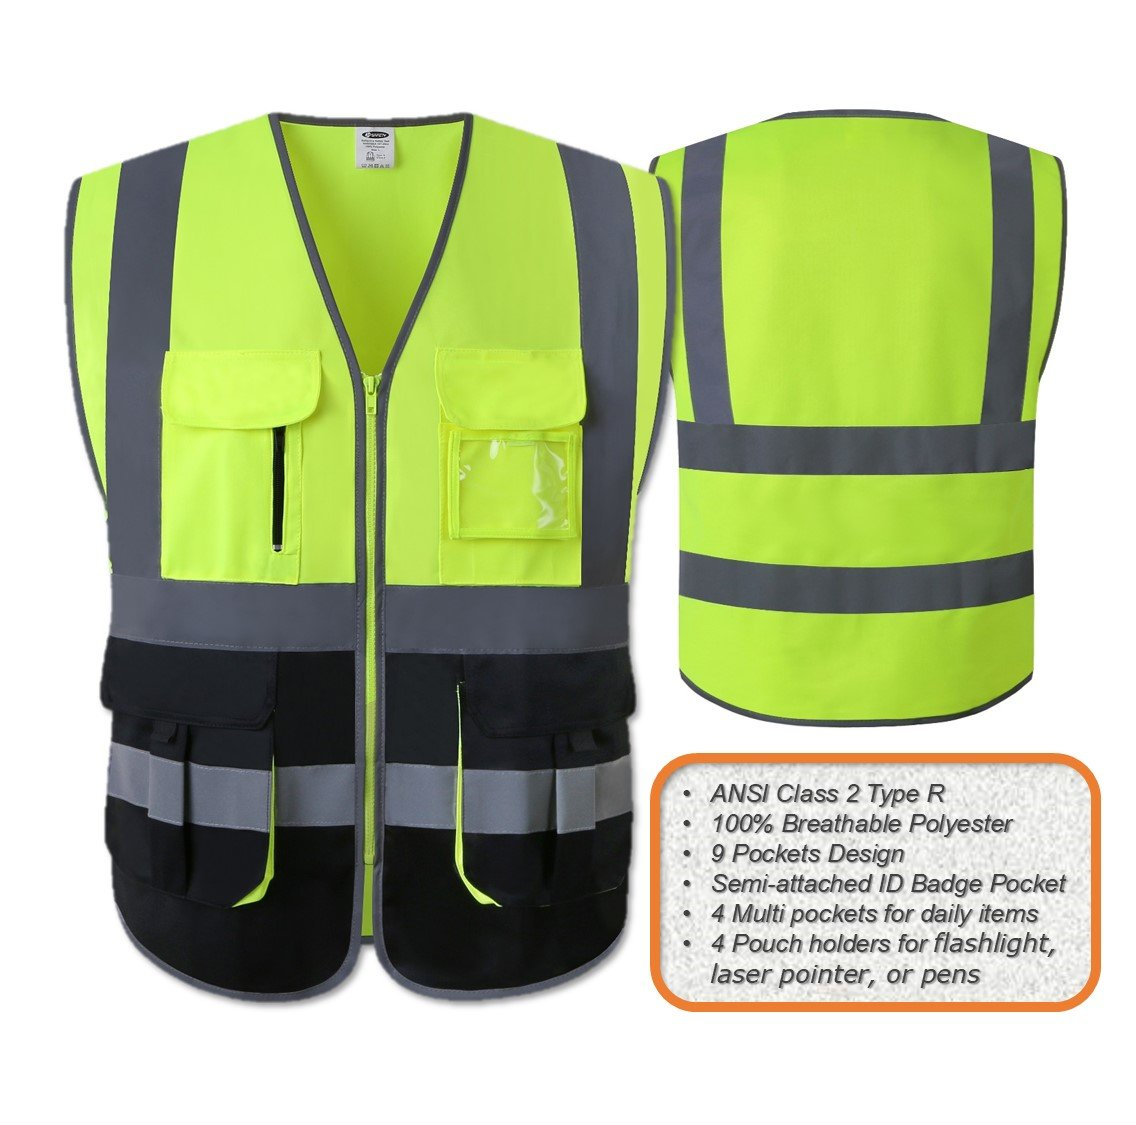 JKSafety Multi Pockets Class 2 High Visibility Zipper Front Safety Vest With Reflective Strips.Meets ANSI/ISEA Standards (Yellow-Black L) by JKSafety (Image #2)